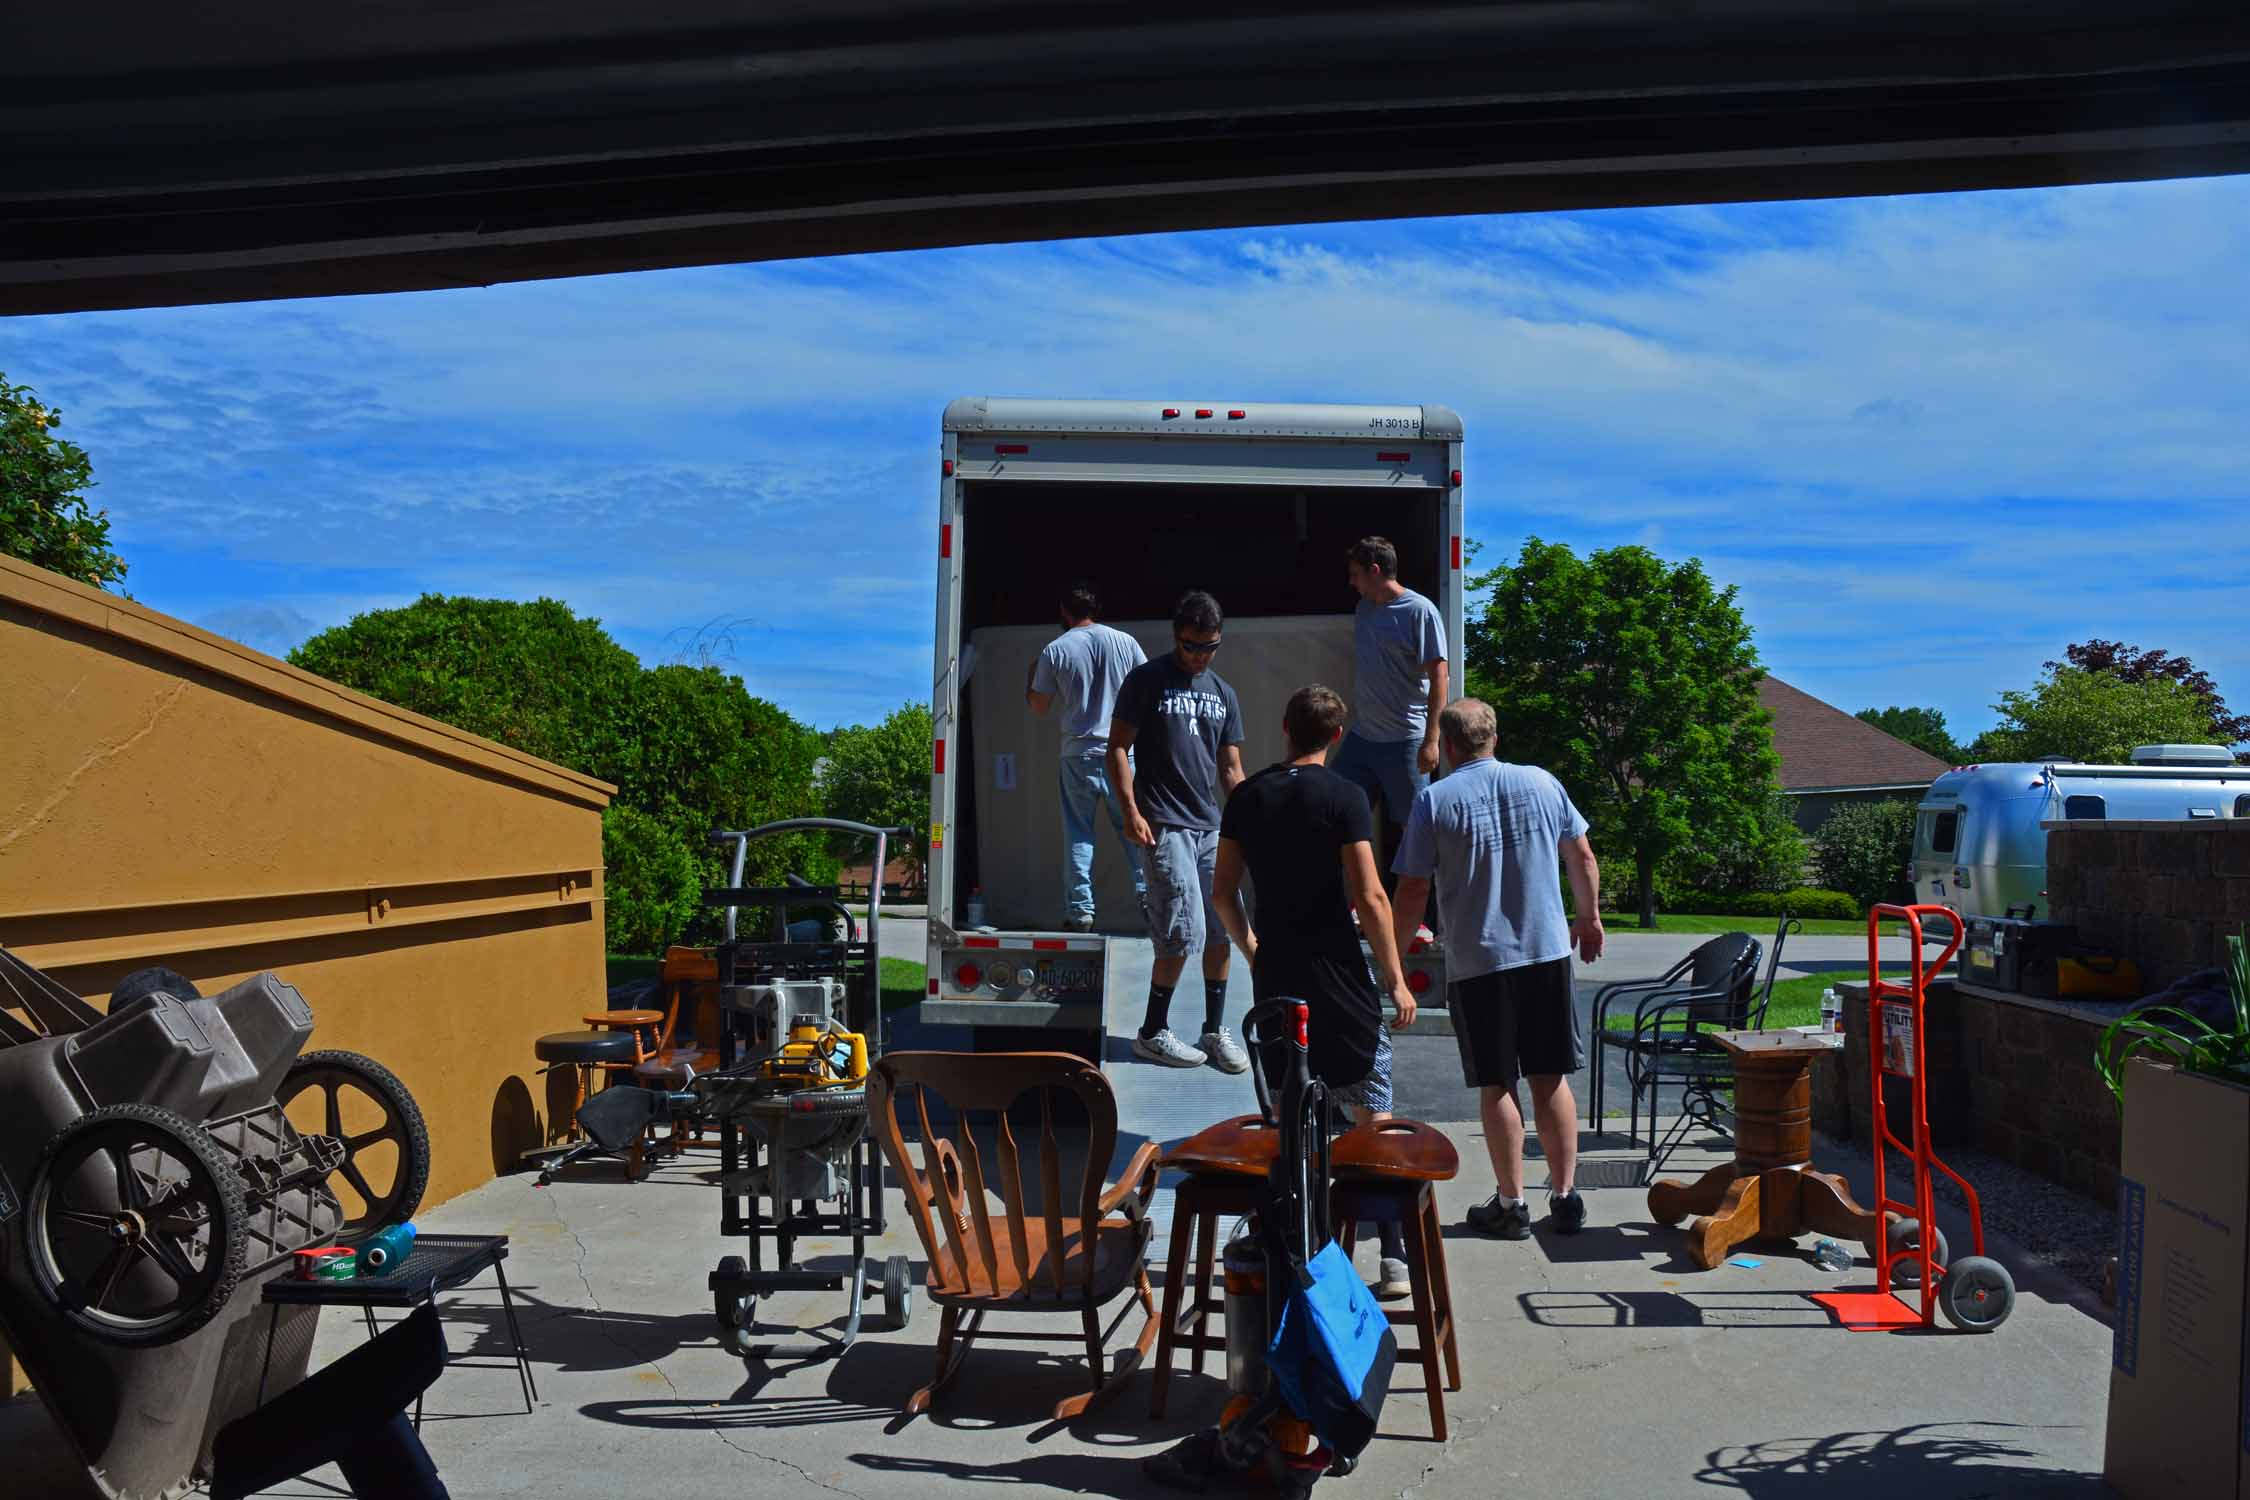 It took six guys two hours to load everything and yes, it all fit on the truck